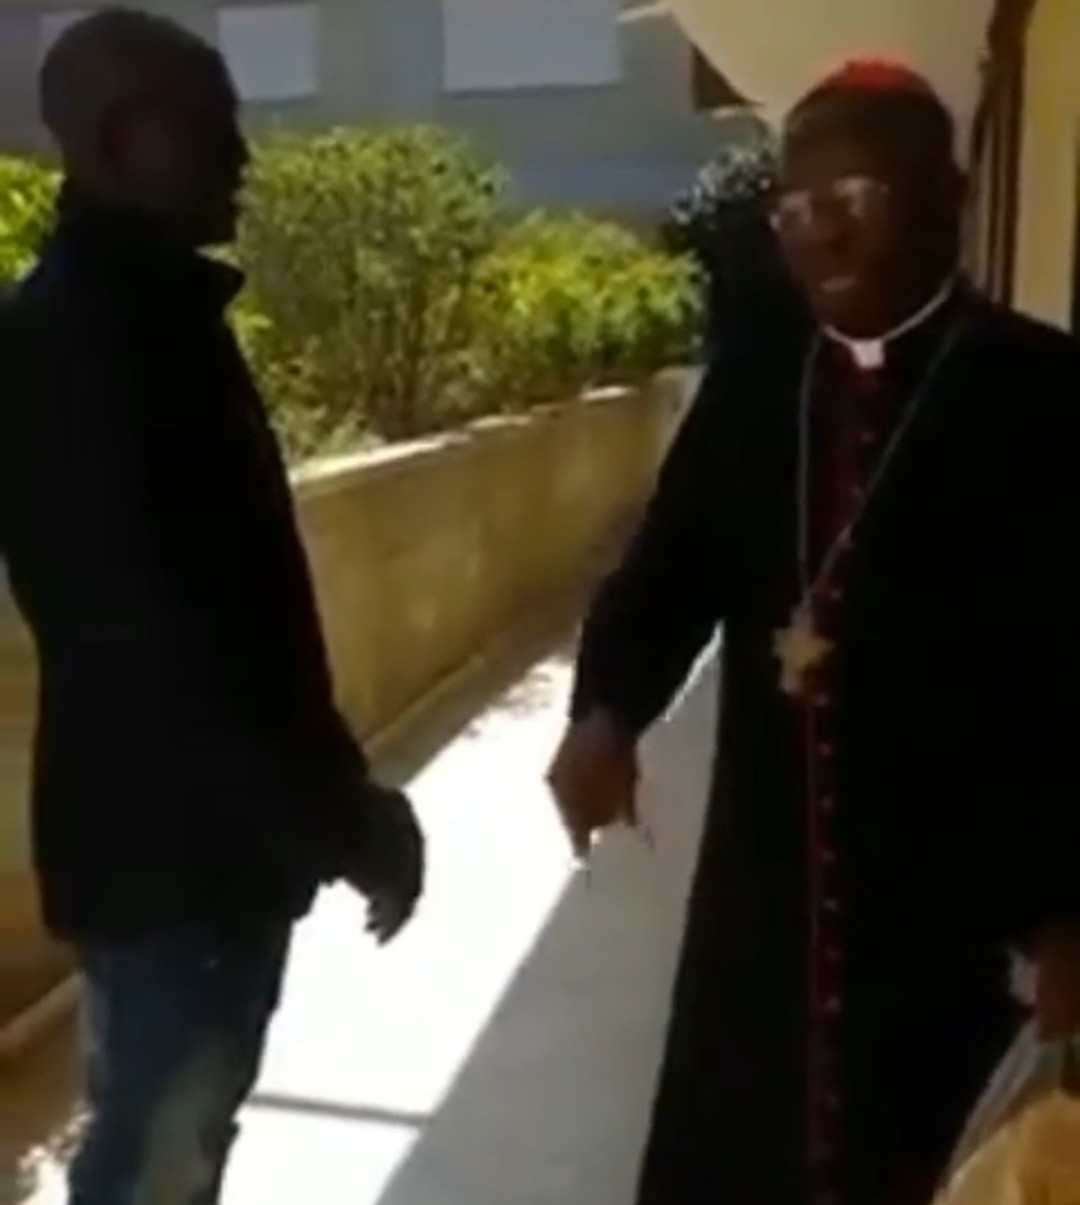 Video: IPOB members approach Cardinal Arinze in Rome, ask him to beg Pope to endorse Biafra